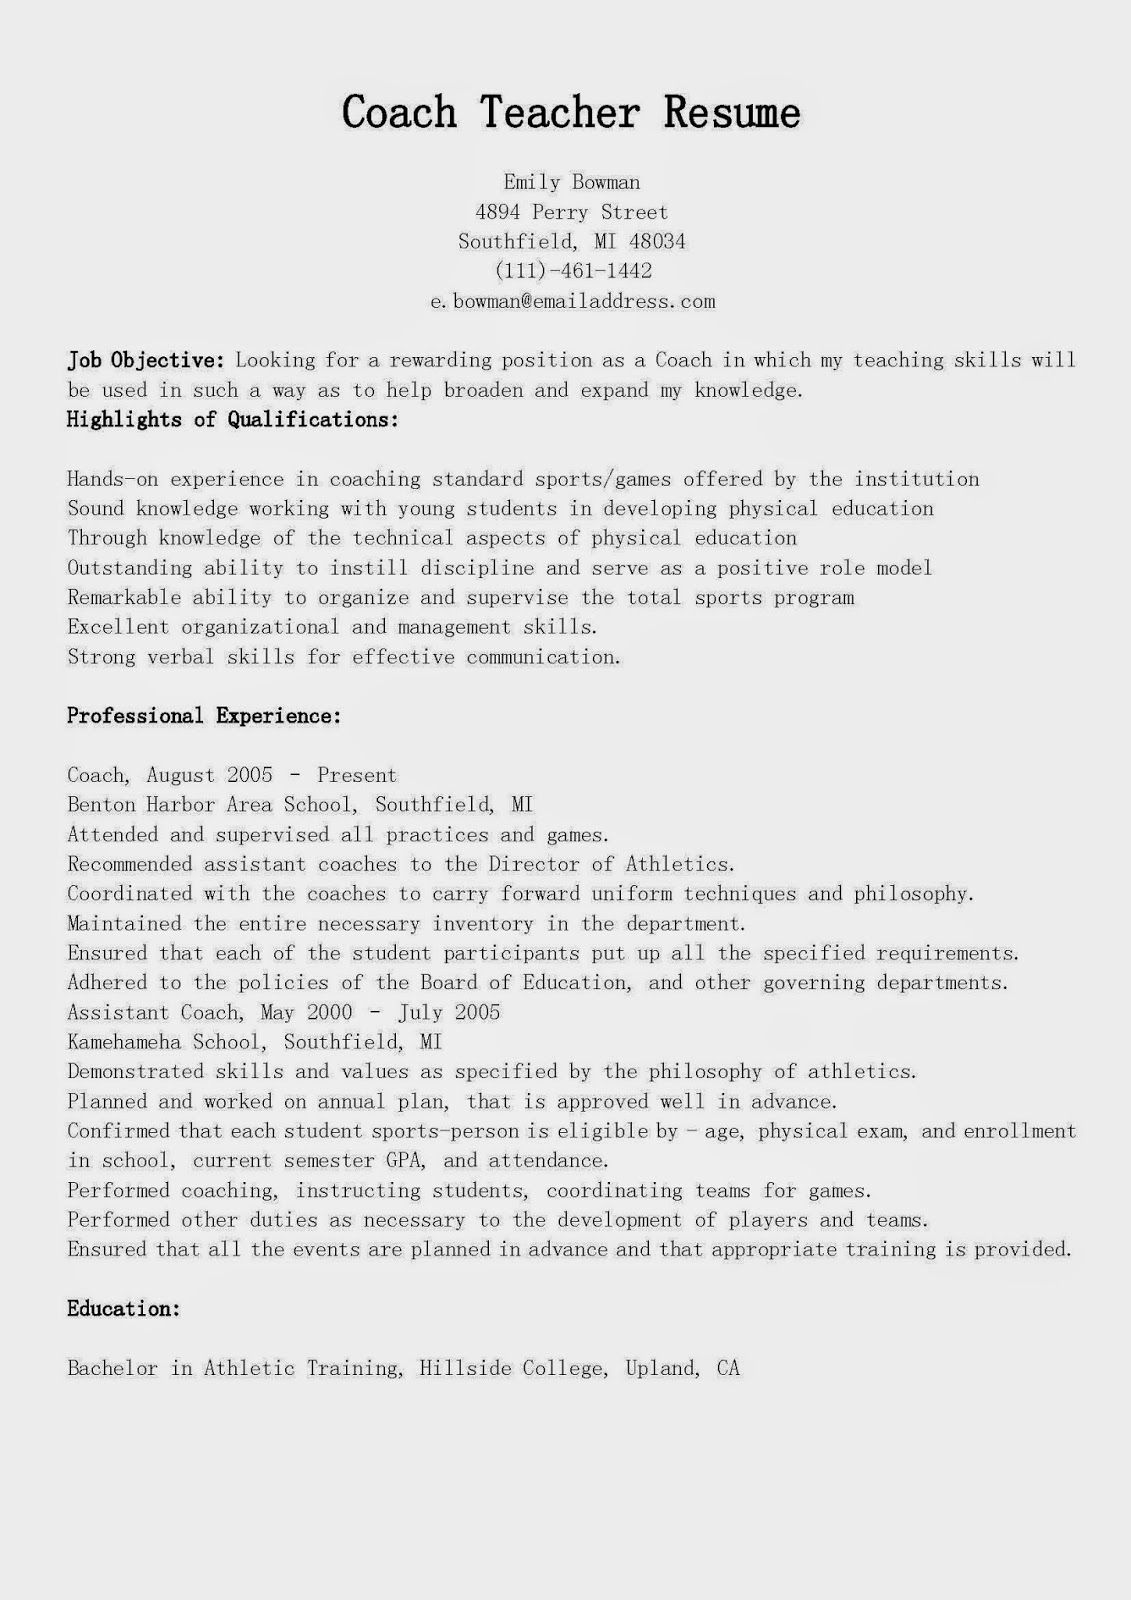 resume objective for teacher and coach